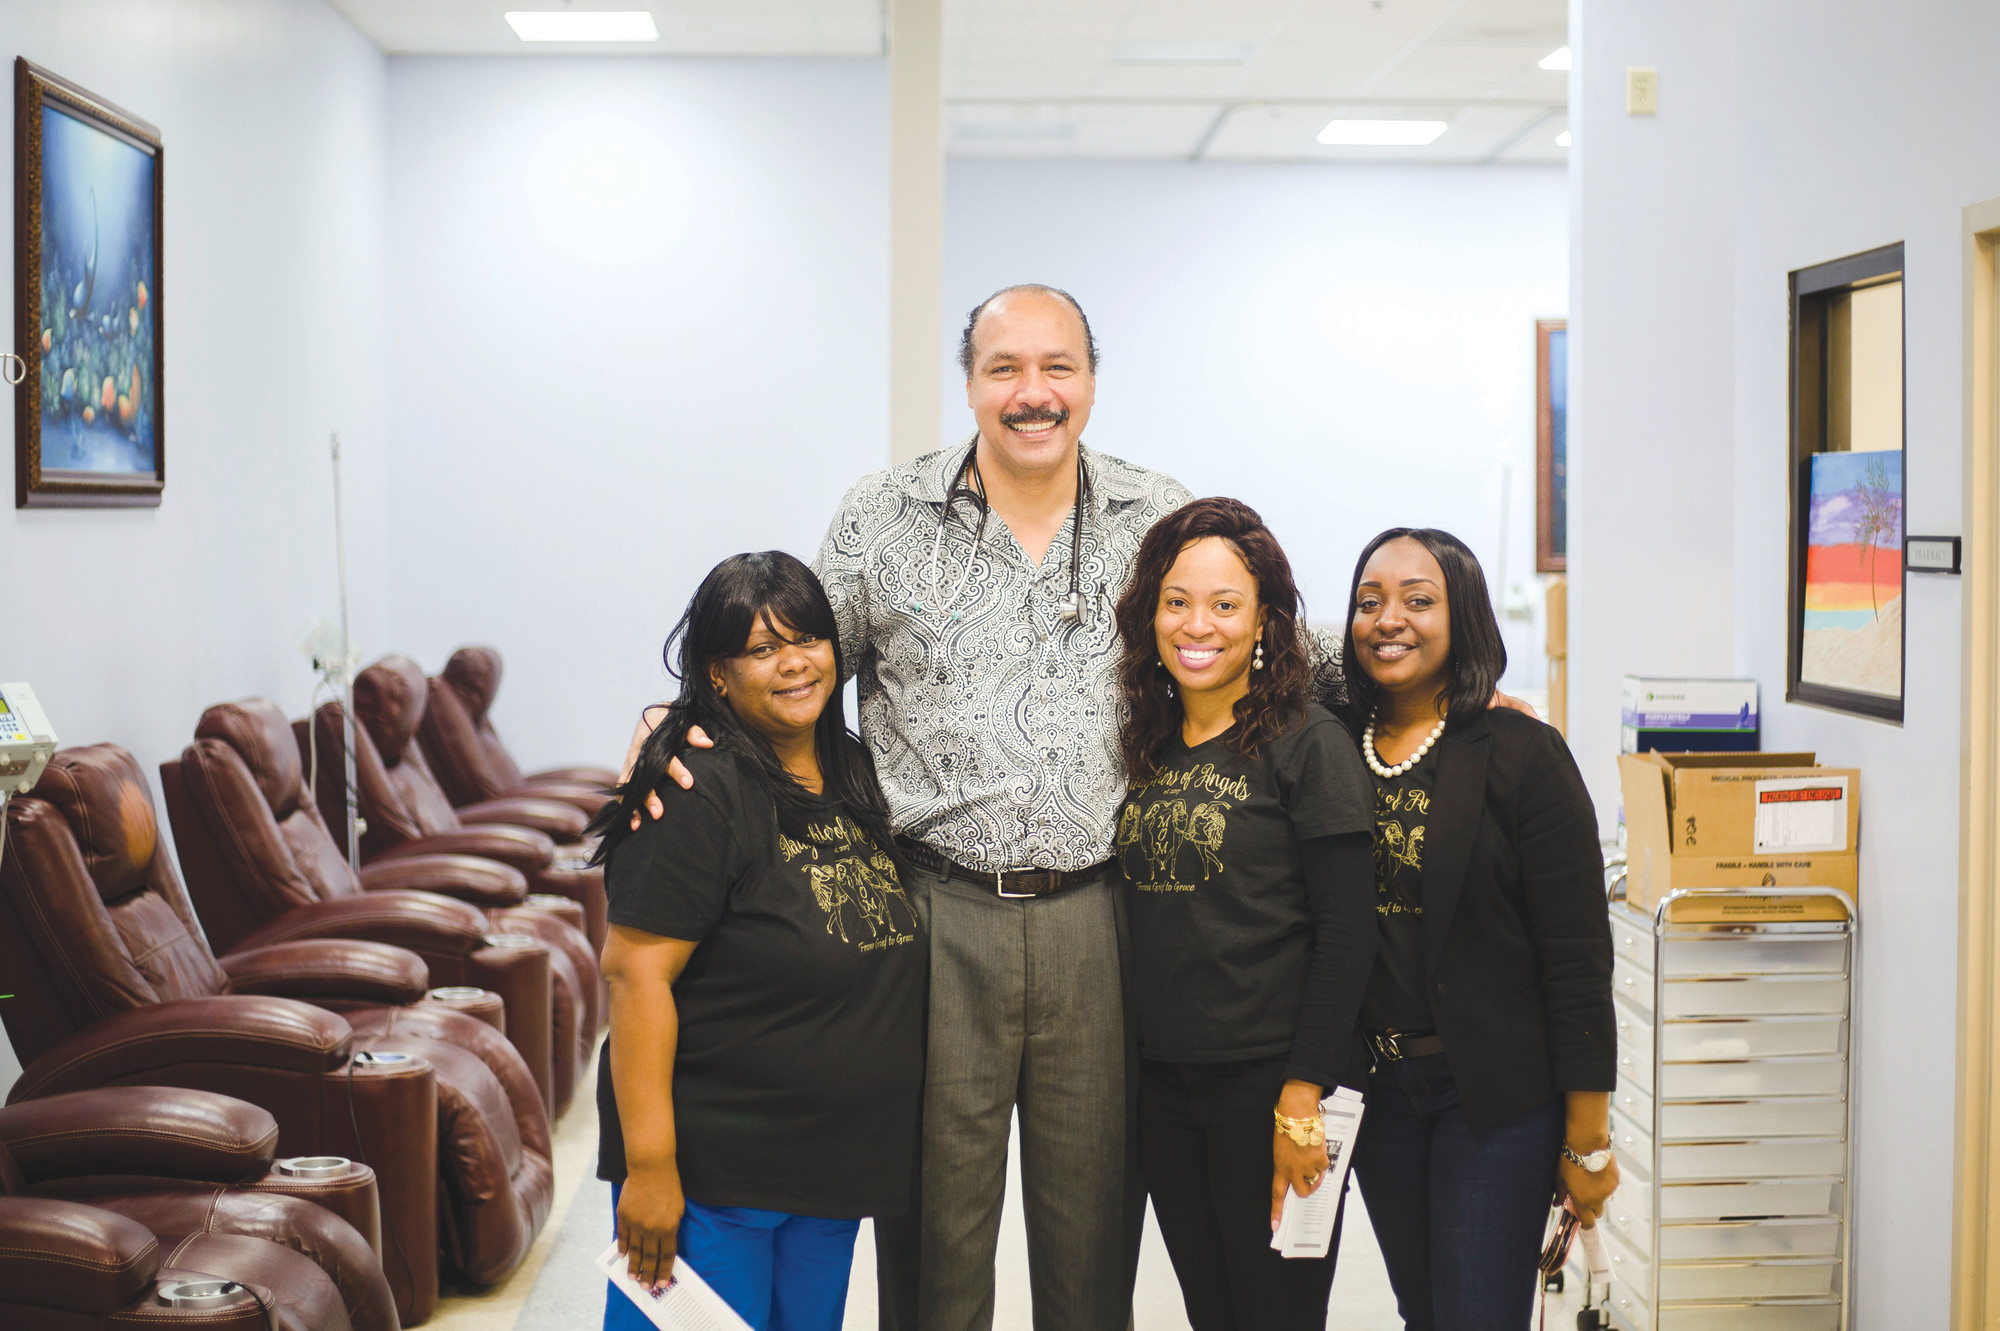 Dr. Billy Clowney is seen with members of Daughters of Angels after the group delivered gift bags to Santee Hematology and Oncology on Friday. Clowney helped treat each of the members' mothers during their fights with cancer.